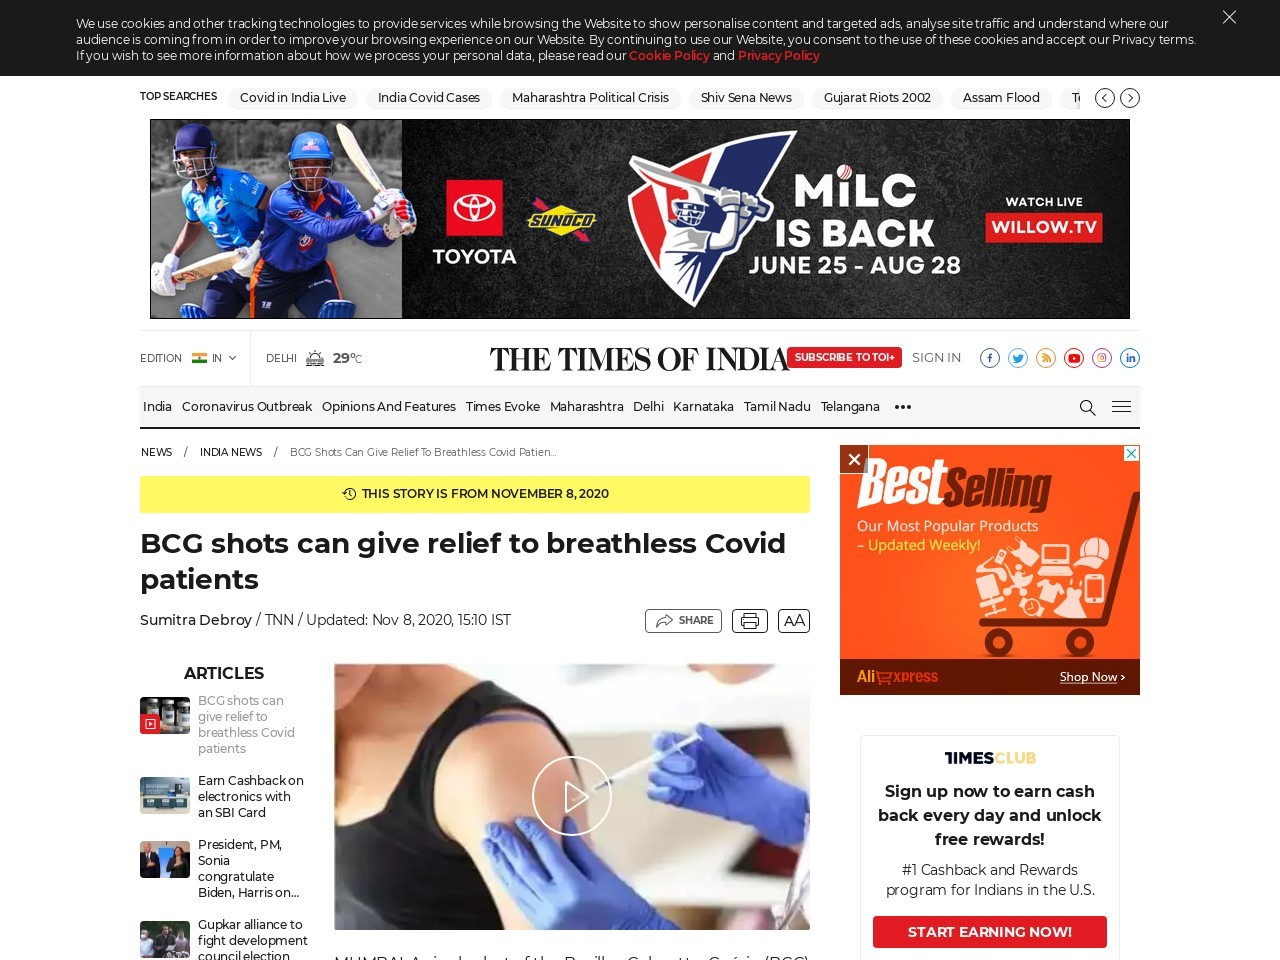 BCG shots can give relief to breathless Covid patients | India News - Times of India